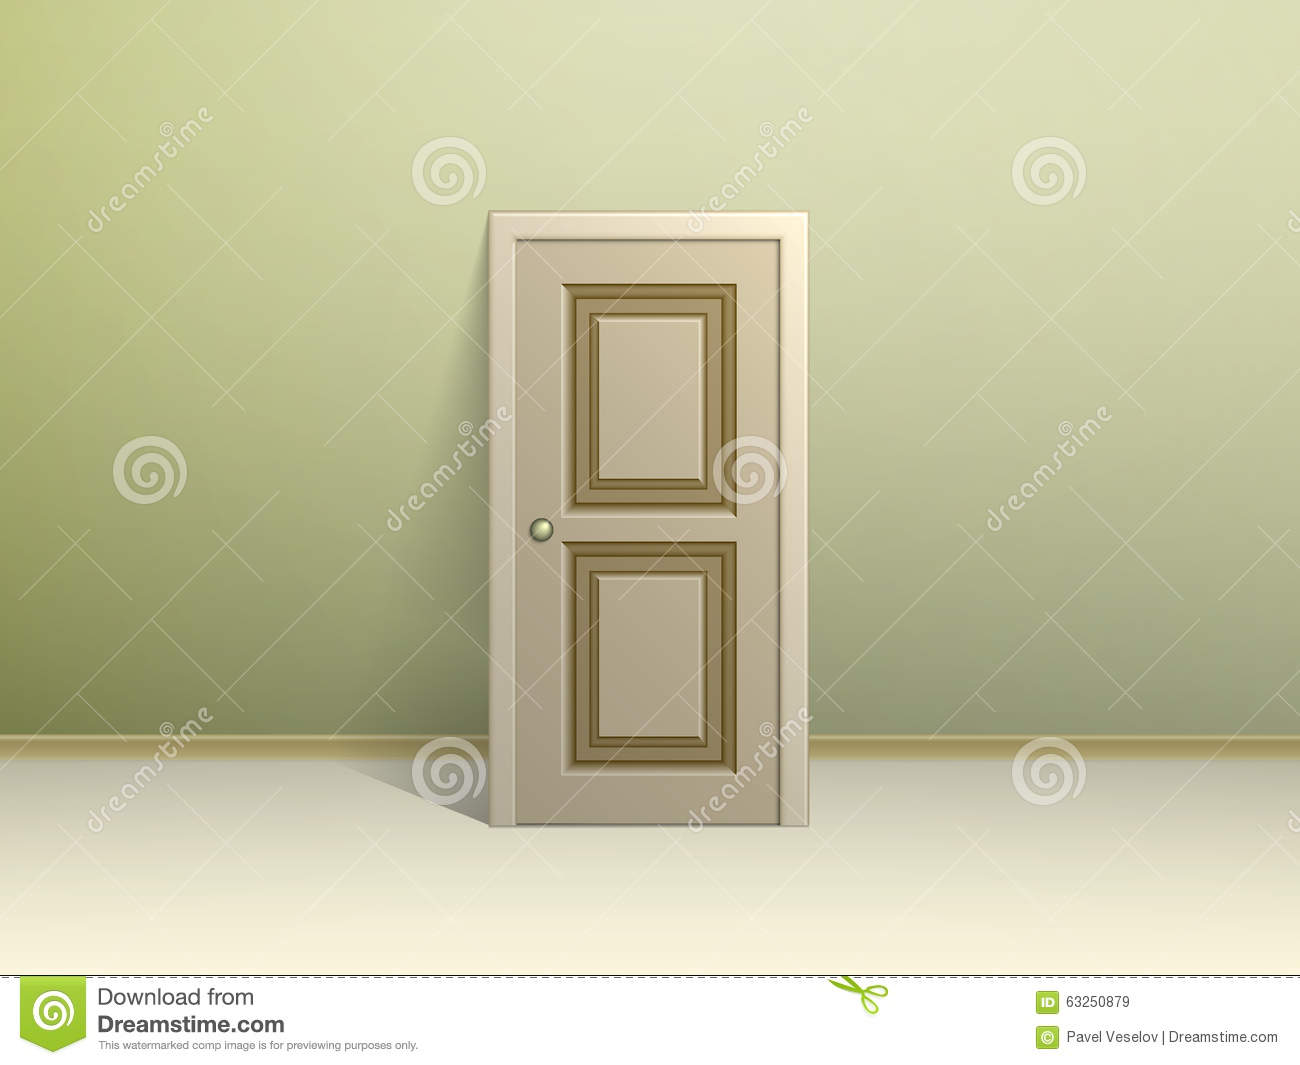 Beige Paneled Door Leaning Against The Wall For Display In A Room With